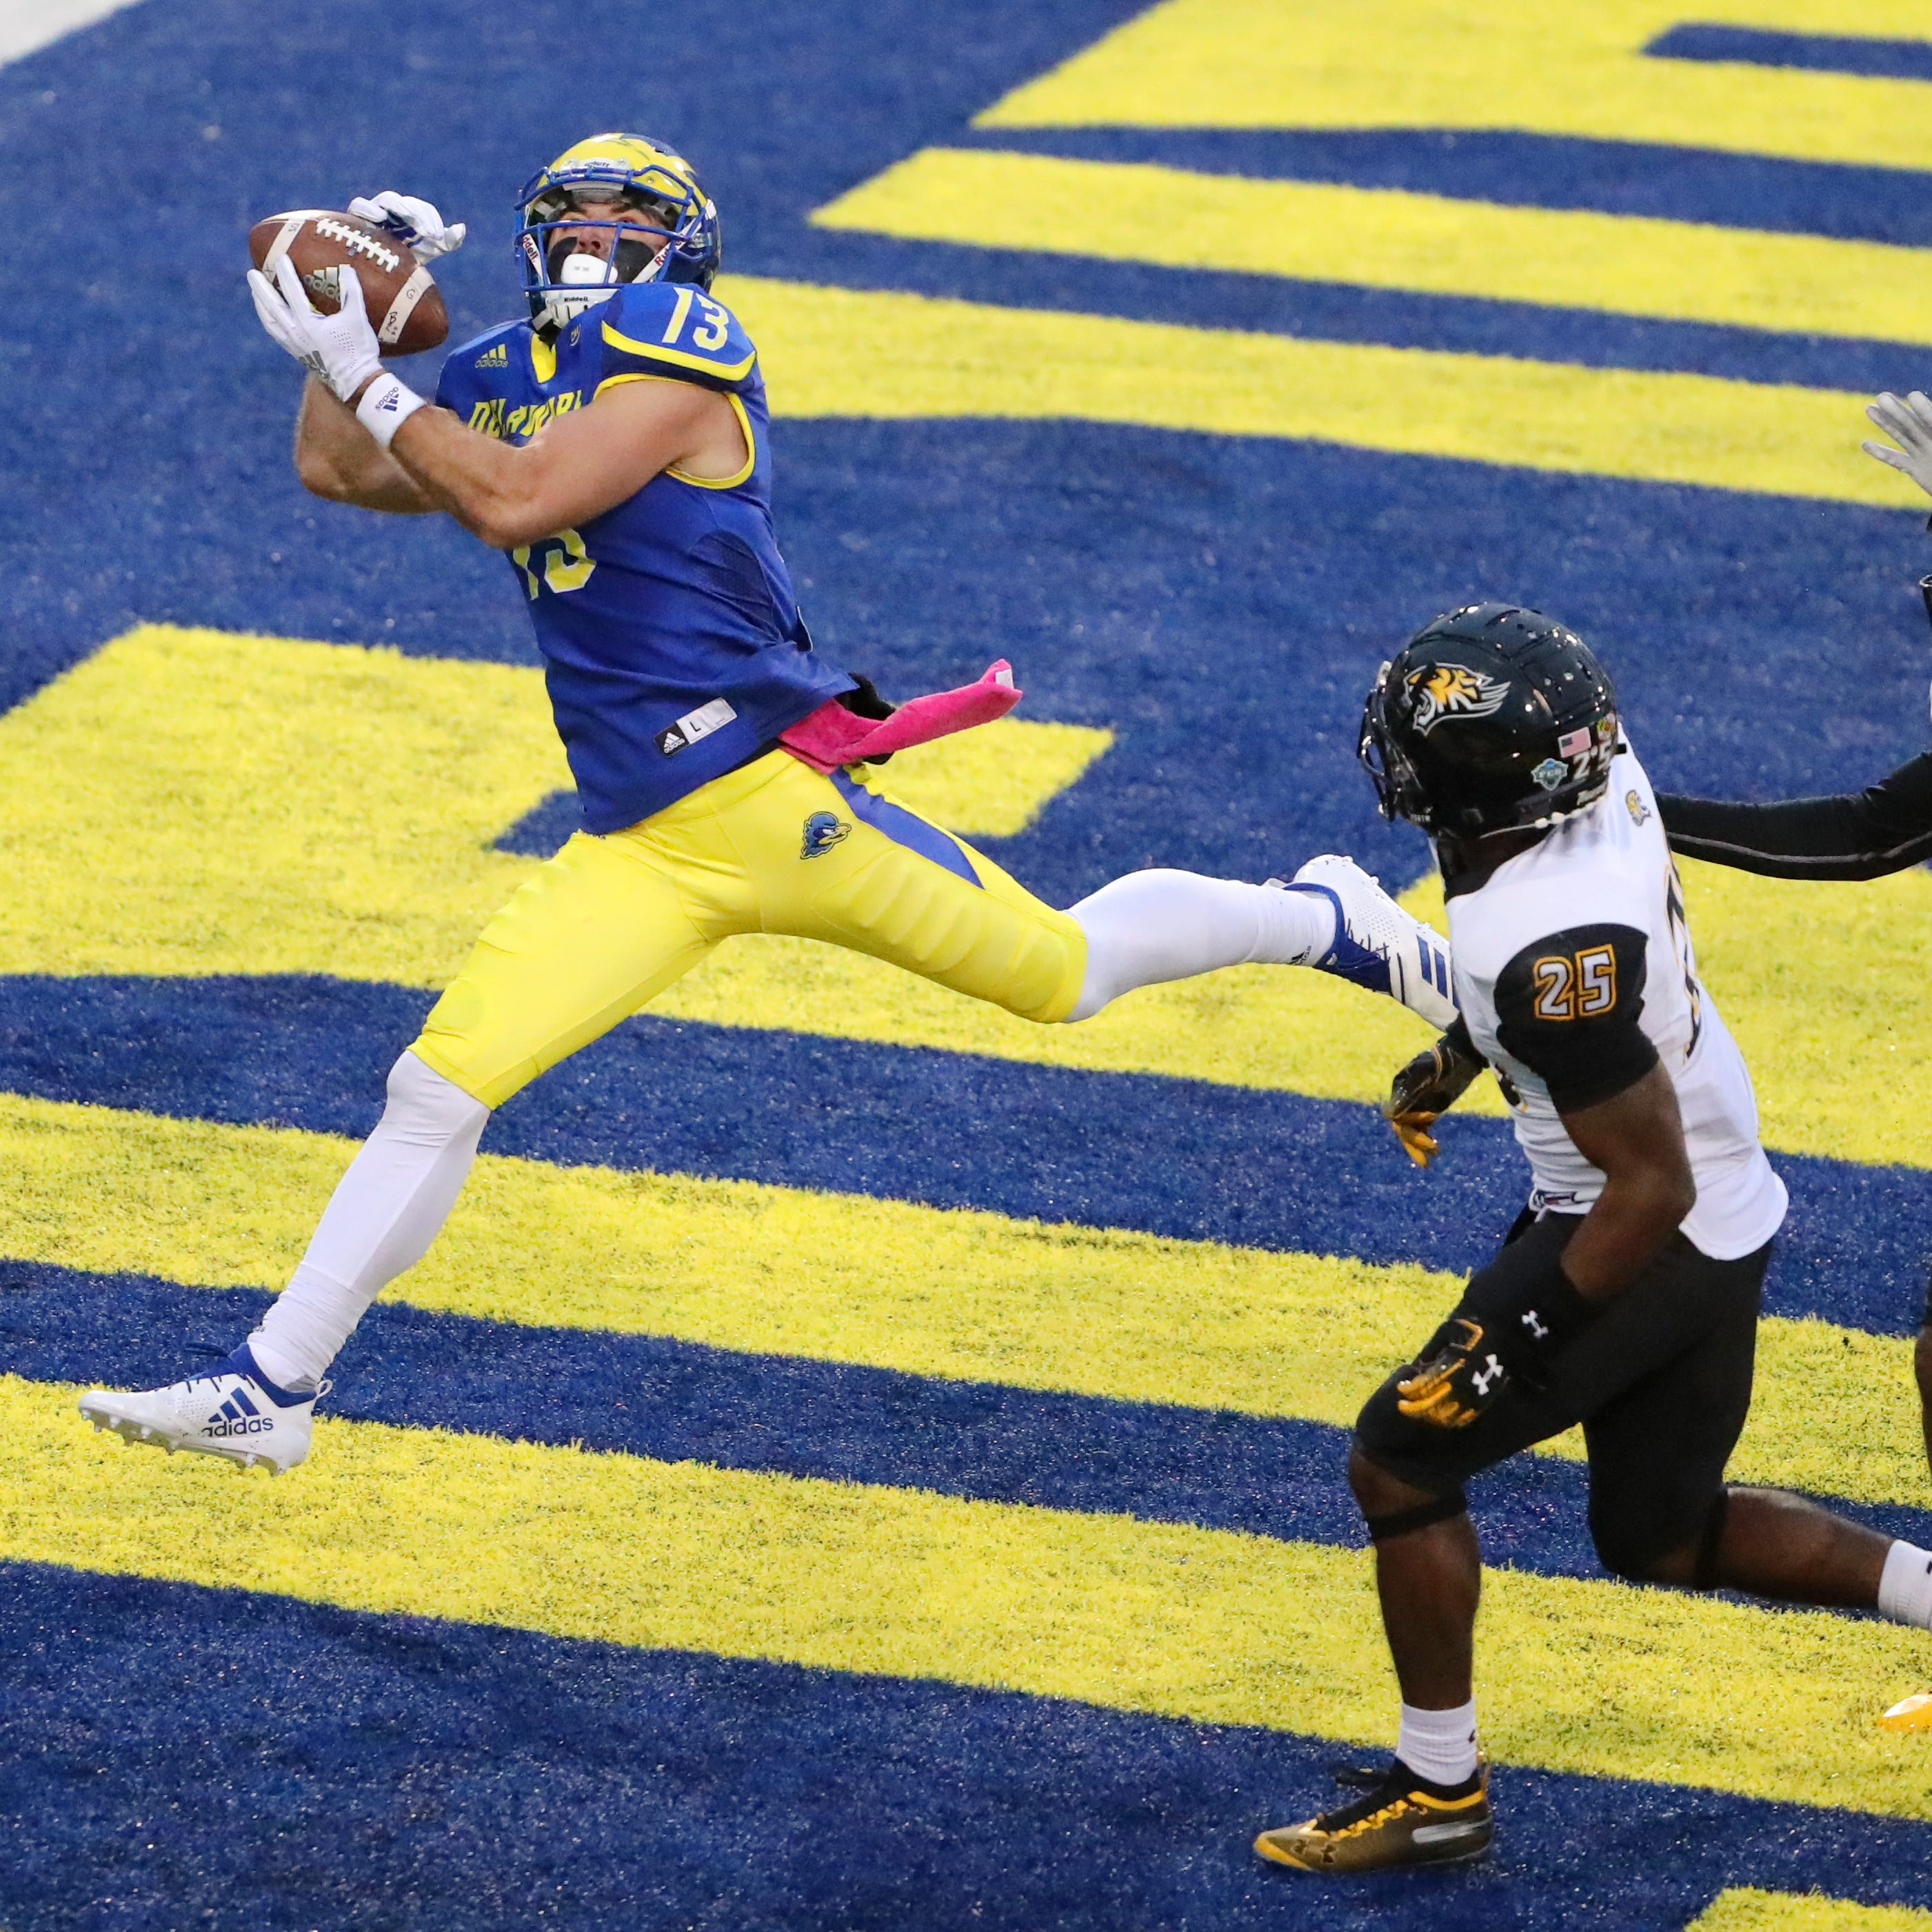 Invincible in his own right, Vinny Papale stars in senior season for Delaware